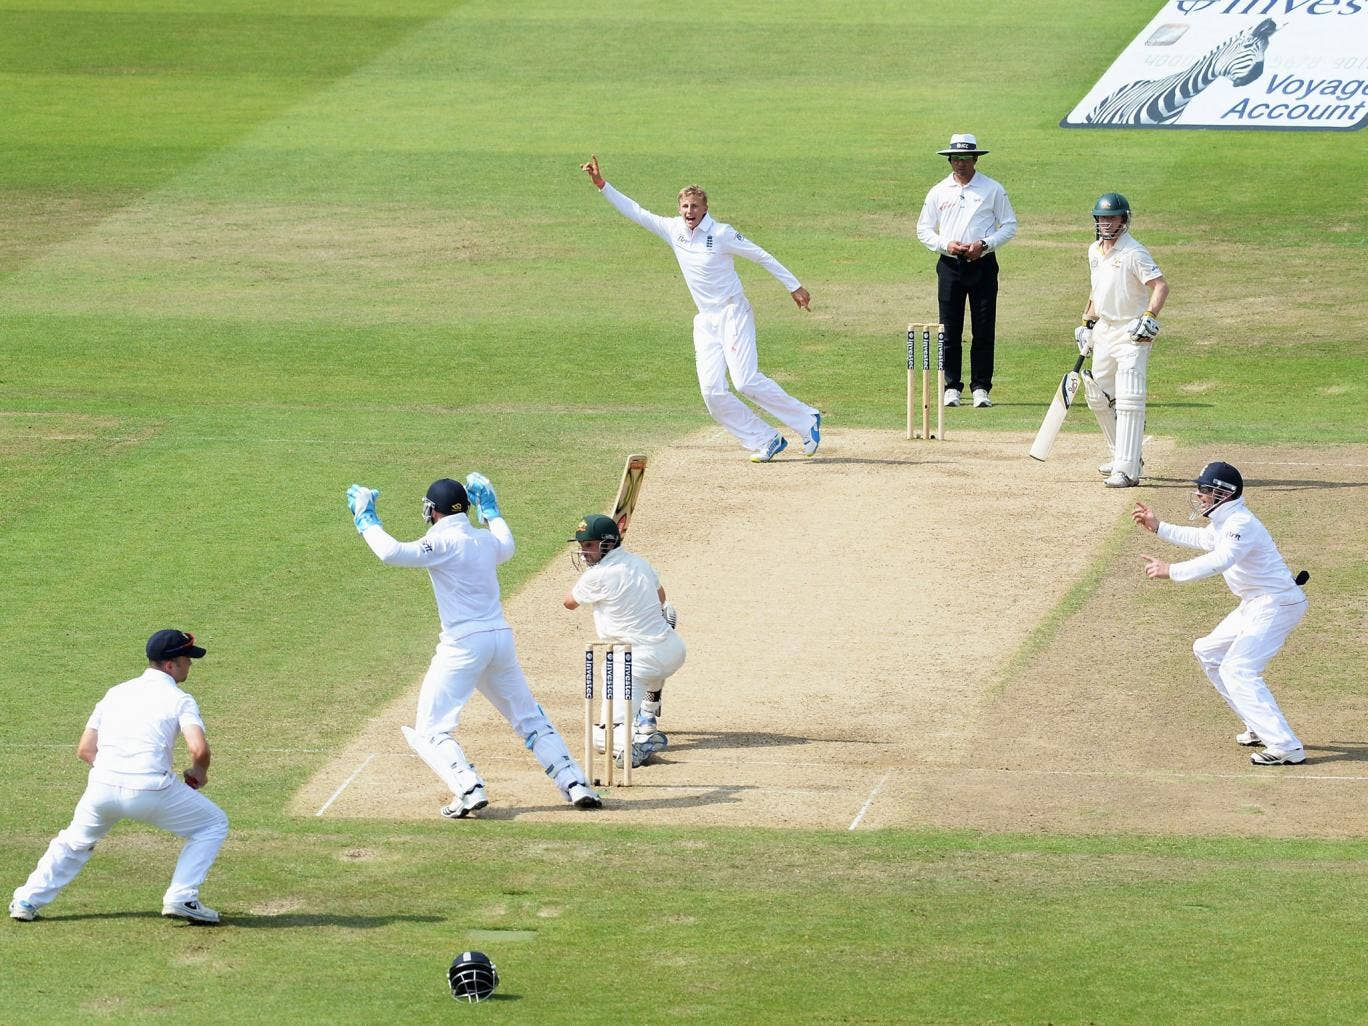 Root to success: Ed Cowan edges a delivery from Joe Root to Jonathan Trott at slip to the delight of the fielders